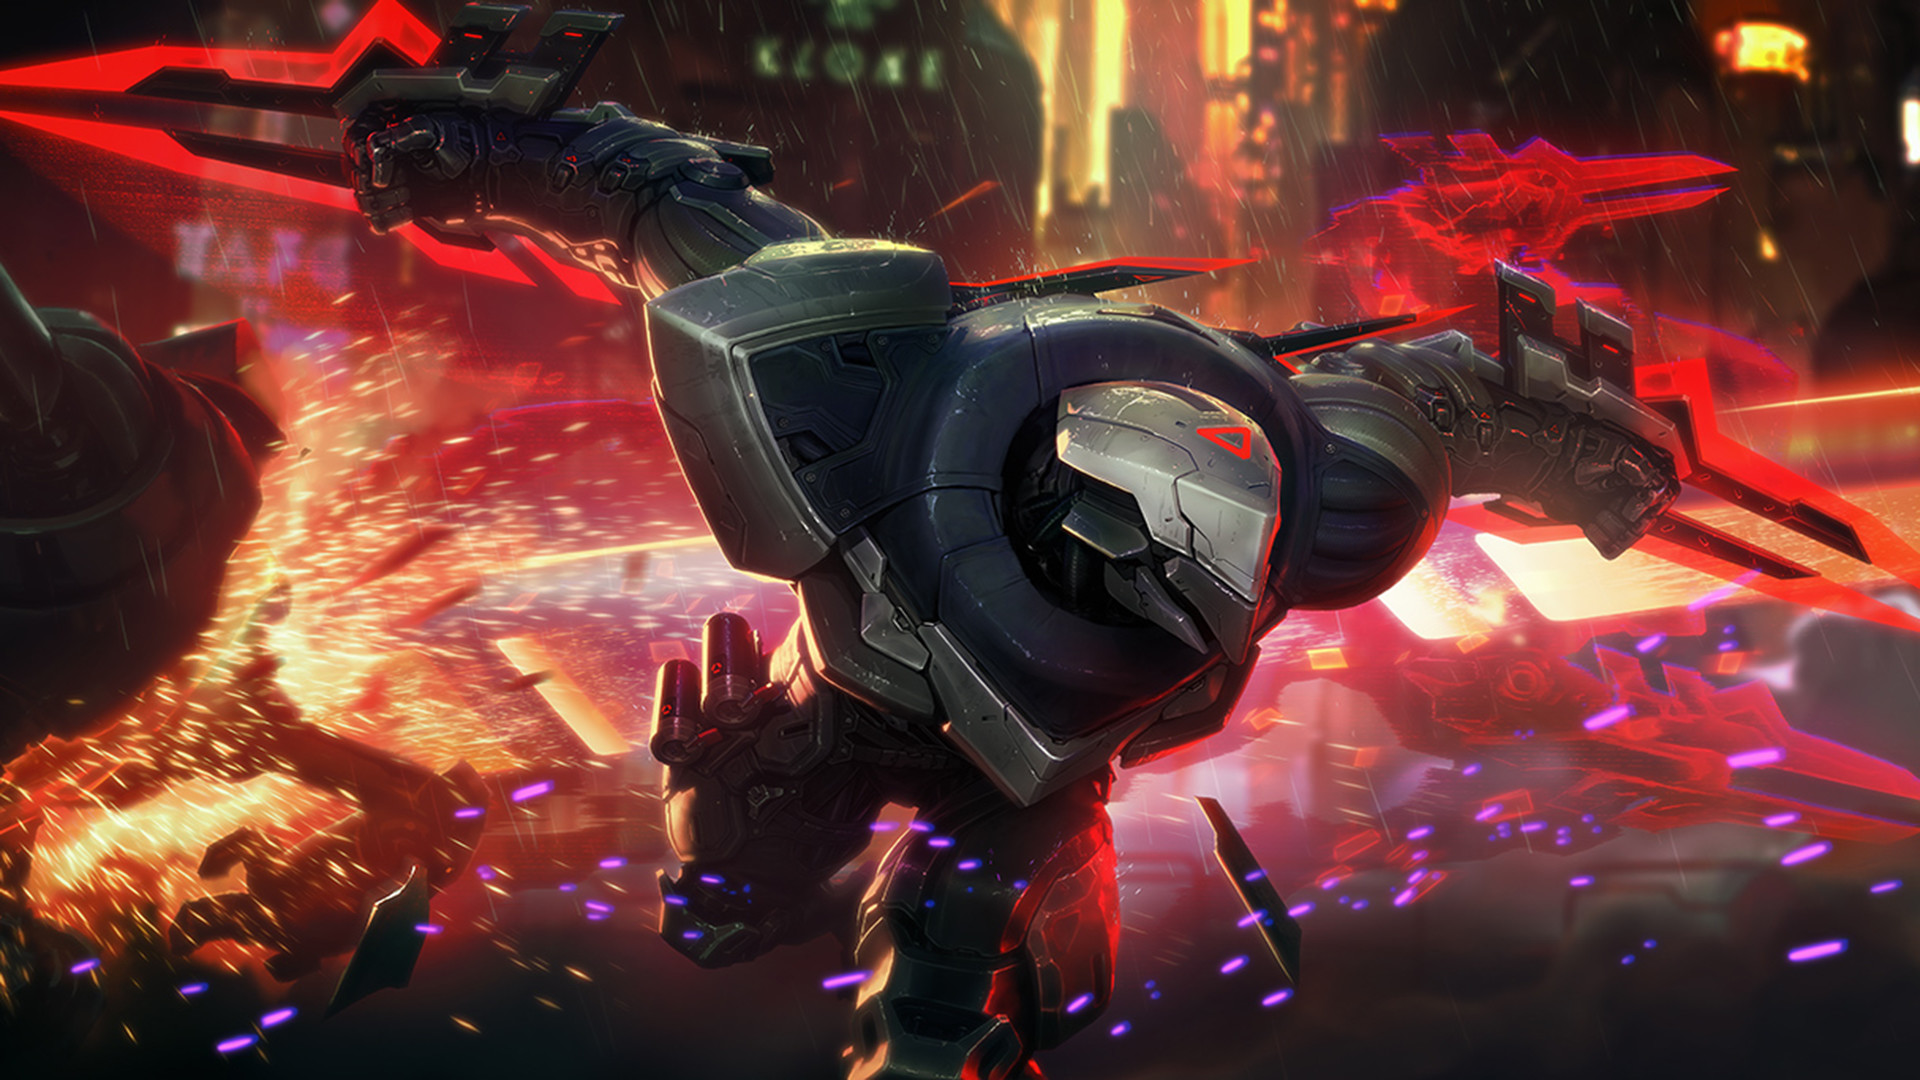 1920x1080 Best 25+ Zed wallpaper hd ideas on Pinterest | Lol league of legends, Yasuo  lol and Lol adc